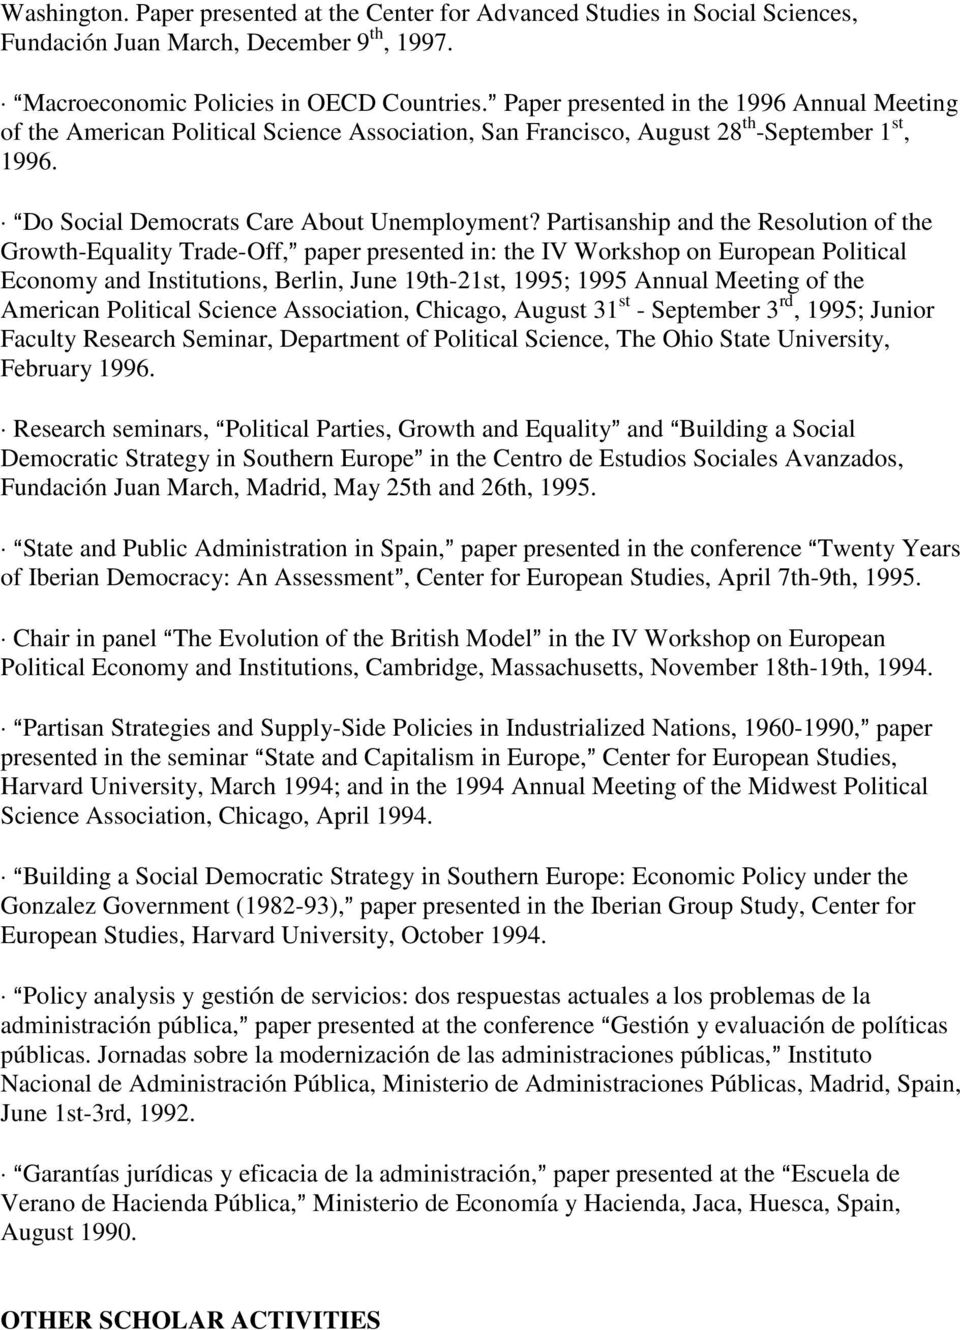 Partisanship and the Resolution of the Growth-Equality Trade-Off,@ paper presented in: the IV Workshop on European Political Economy and Institutions, Berlin, June 19th-21st, 1995; 1995 Annual